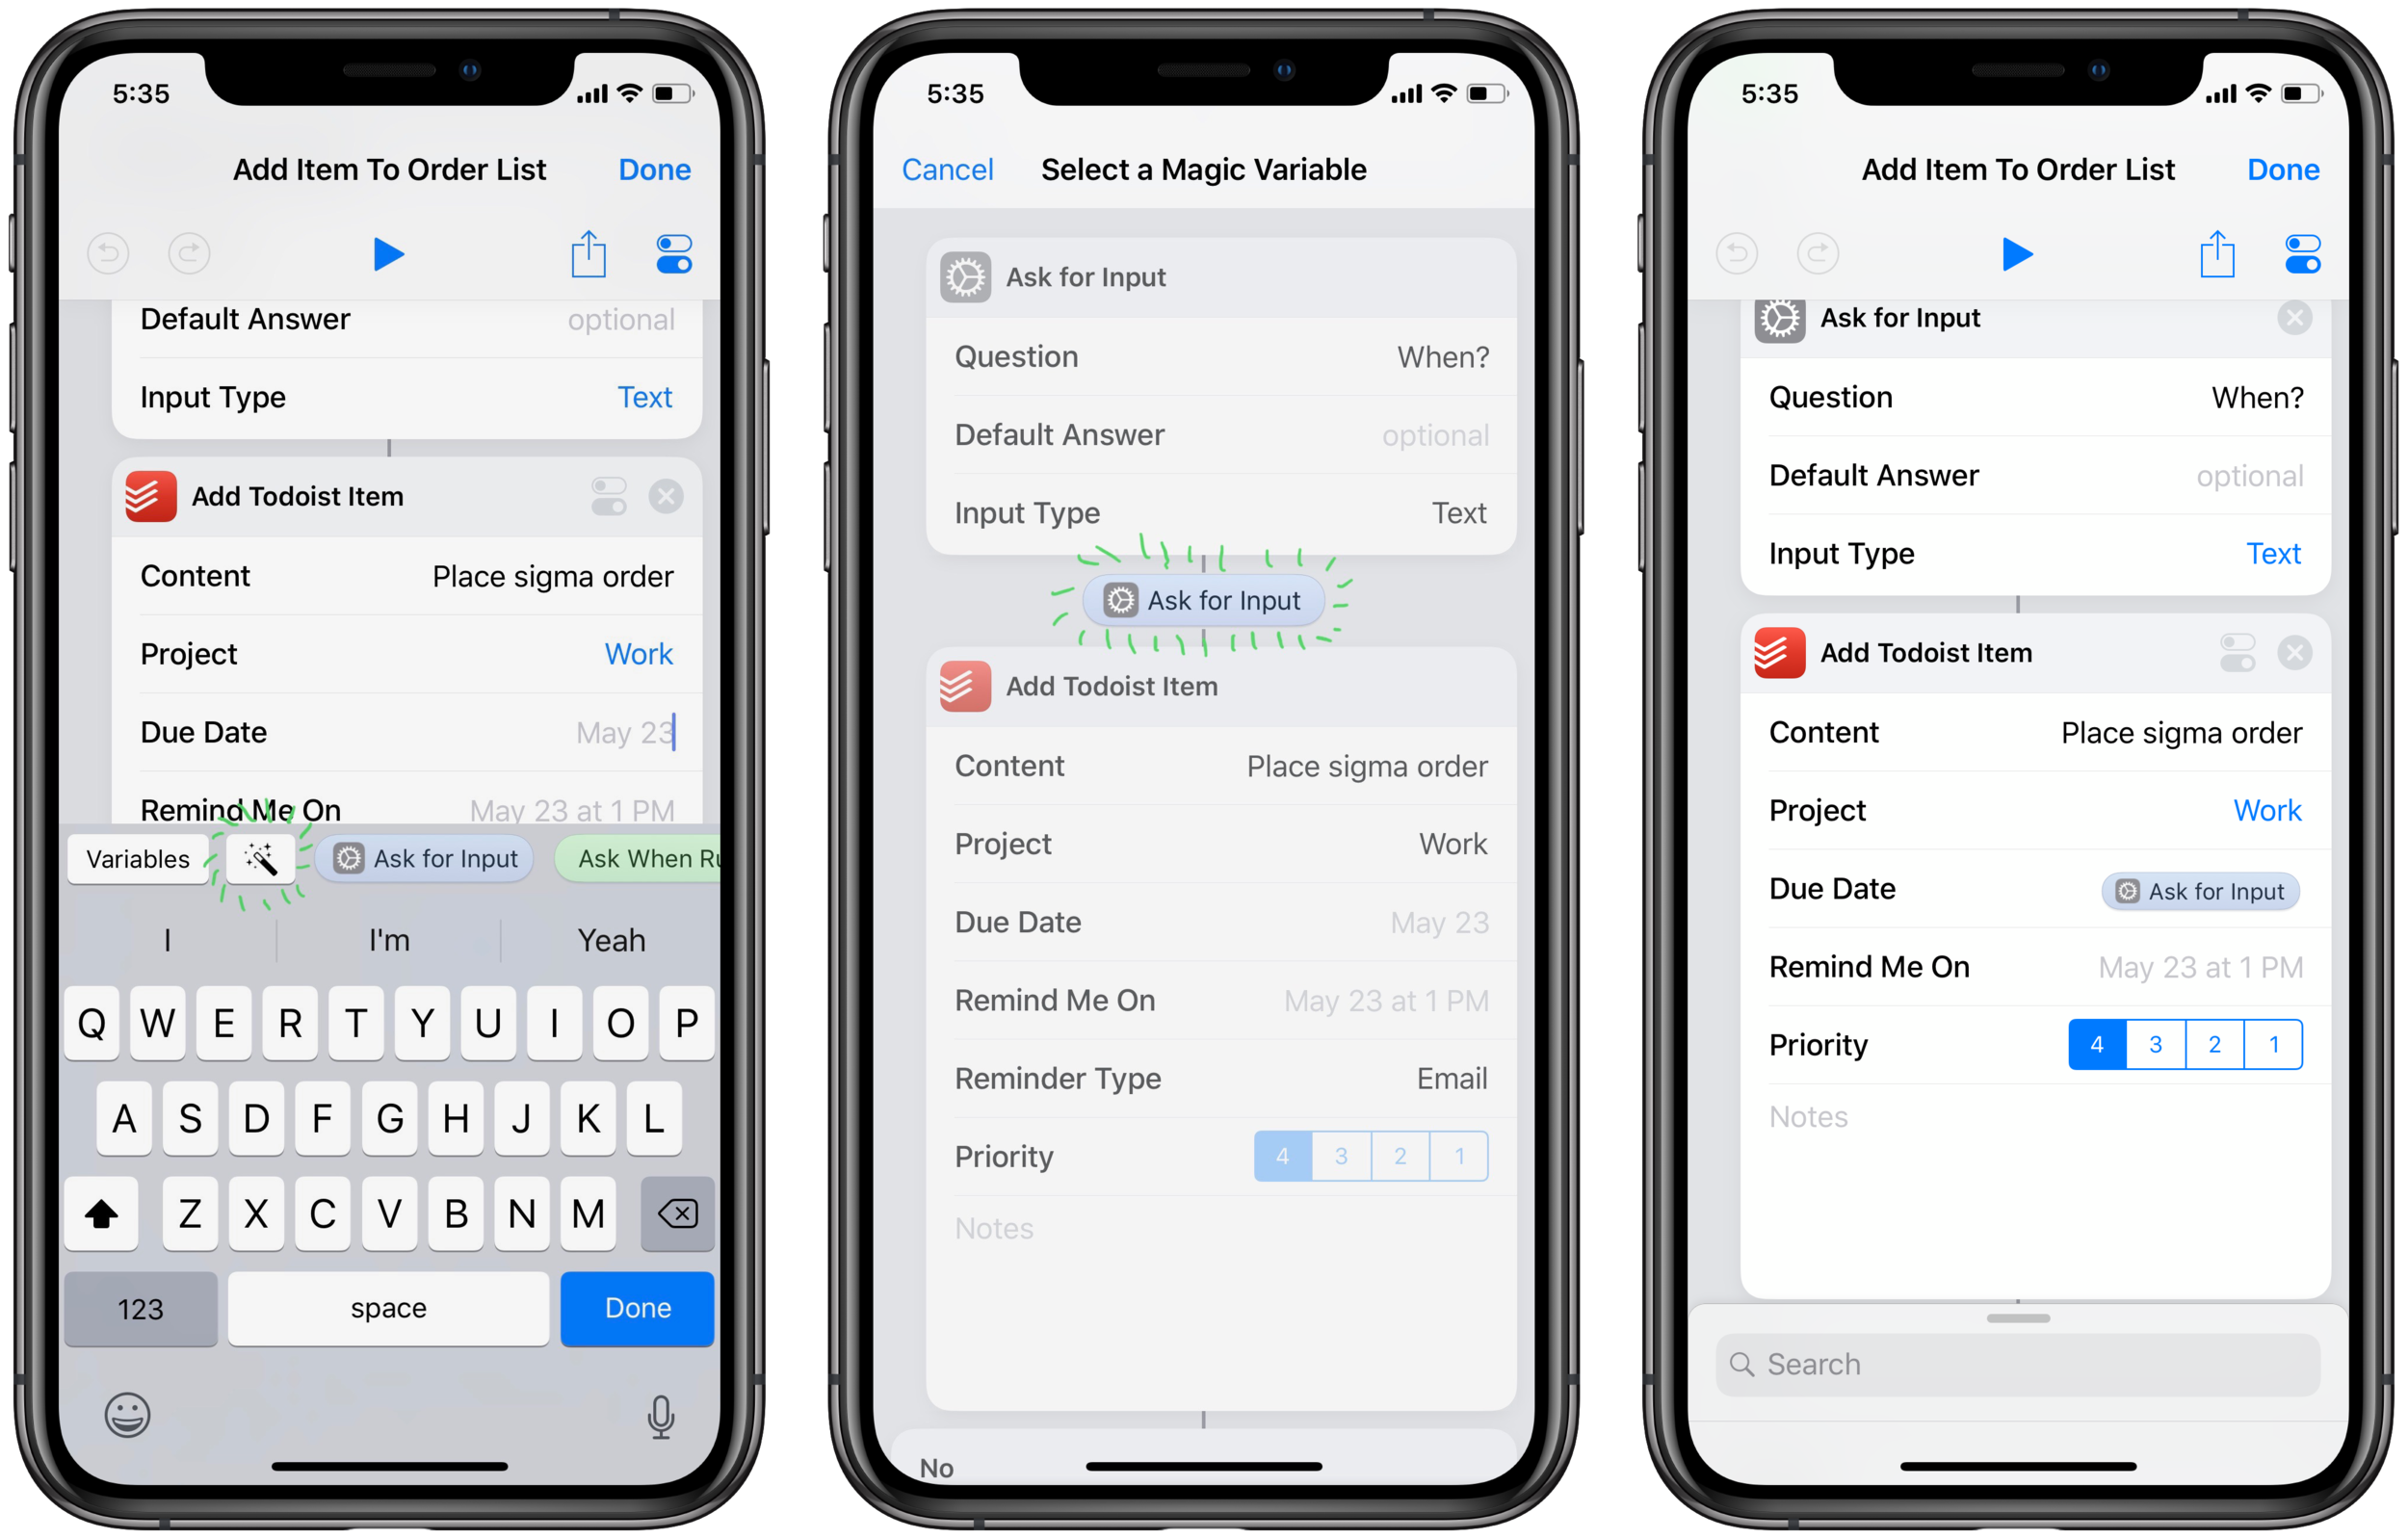 Speeding Up Consumables Orders with Shortcuts on iOS